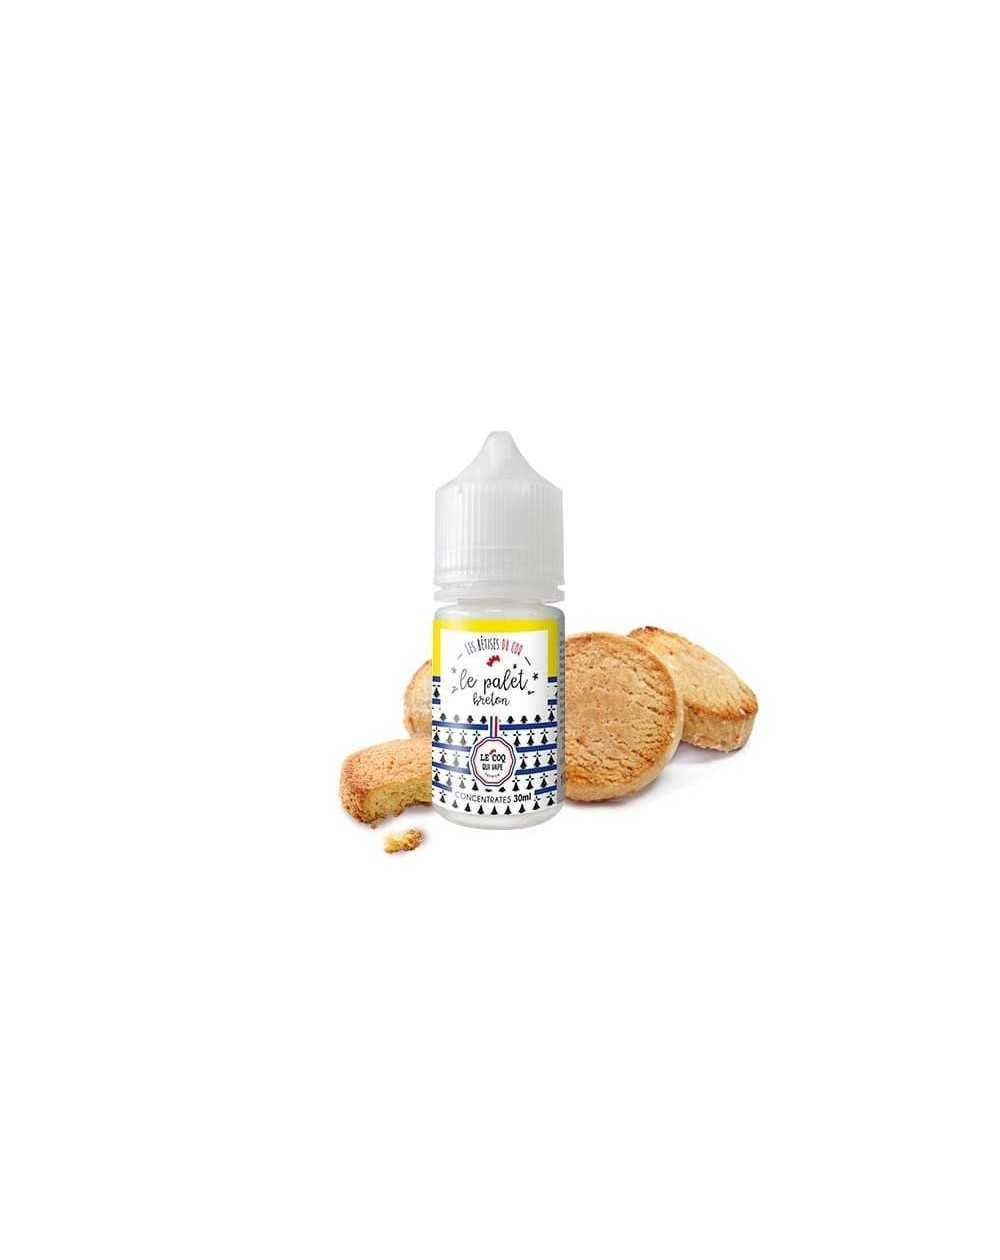 Concentrated aroma Le Palet Breton 30ml - Le Coq Qui Vape-1